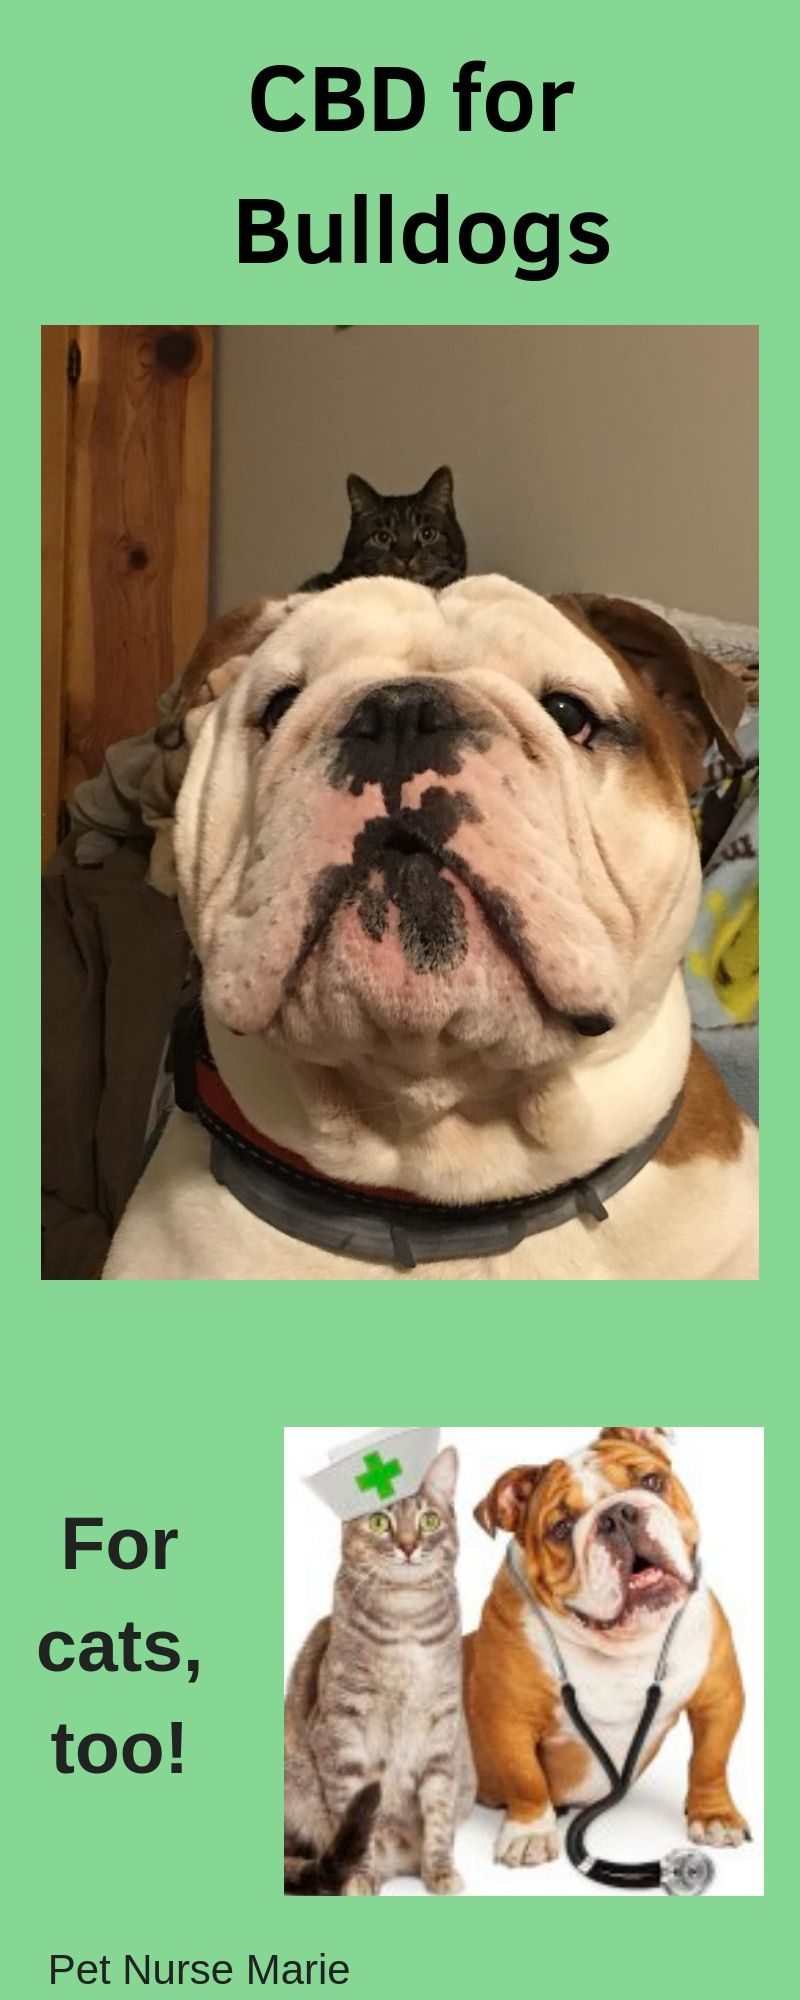 Bulldog Guide Breed Temperament Health Info Dogs Dog Breeds